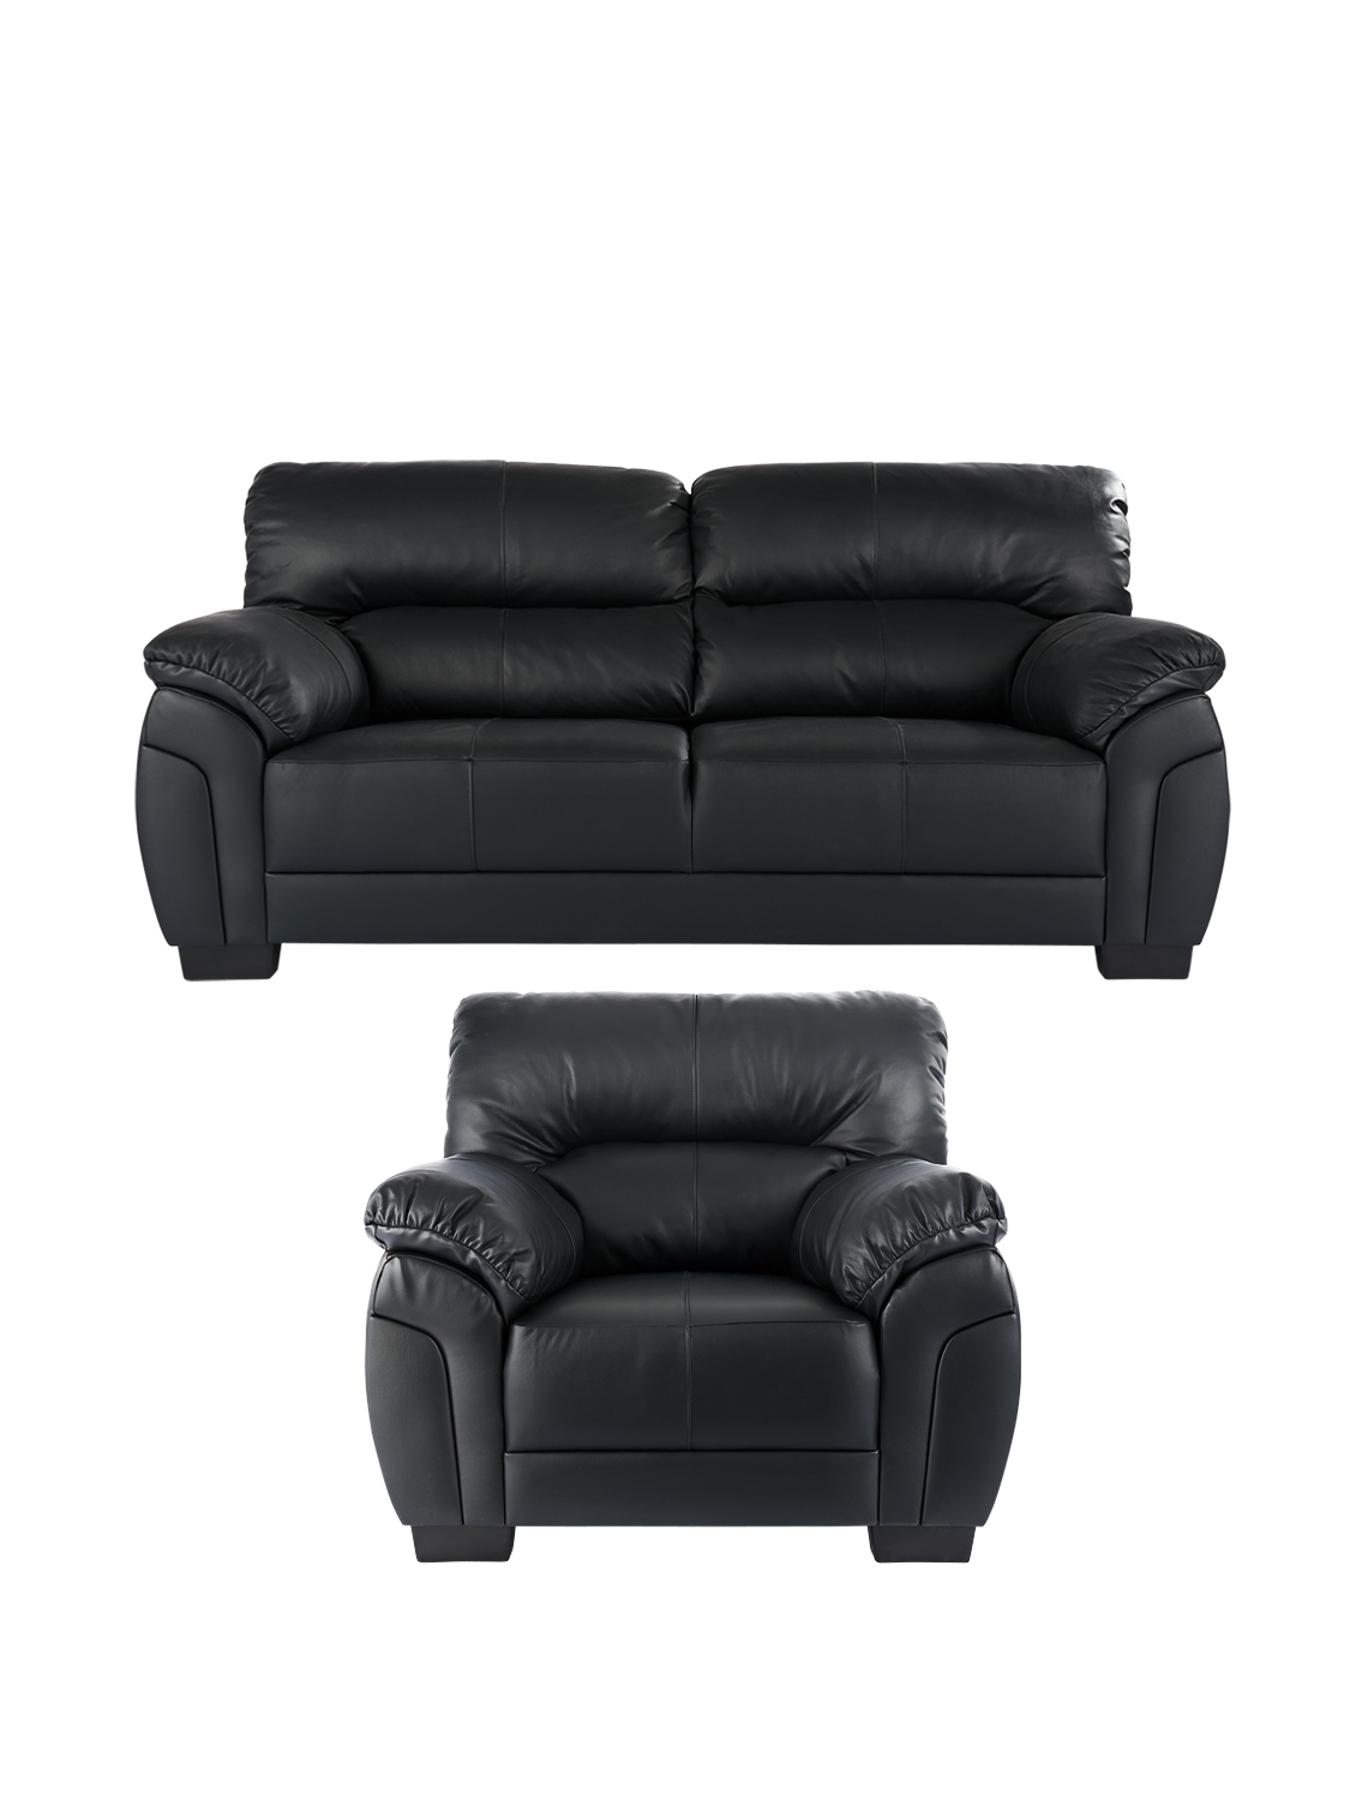 Ancona 3-Seater and Armchair (buy and SAVE!) - Black, Black,Chocolate